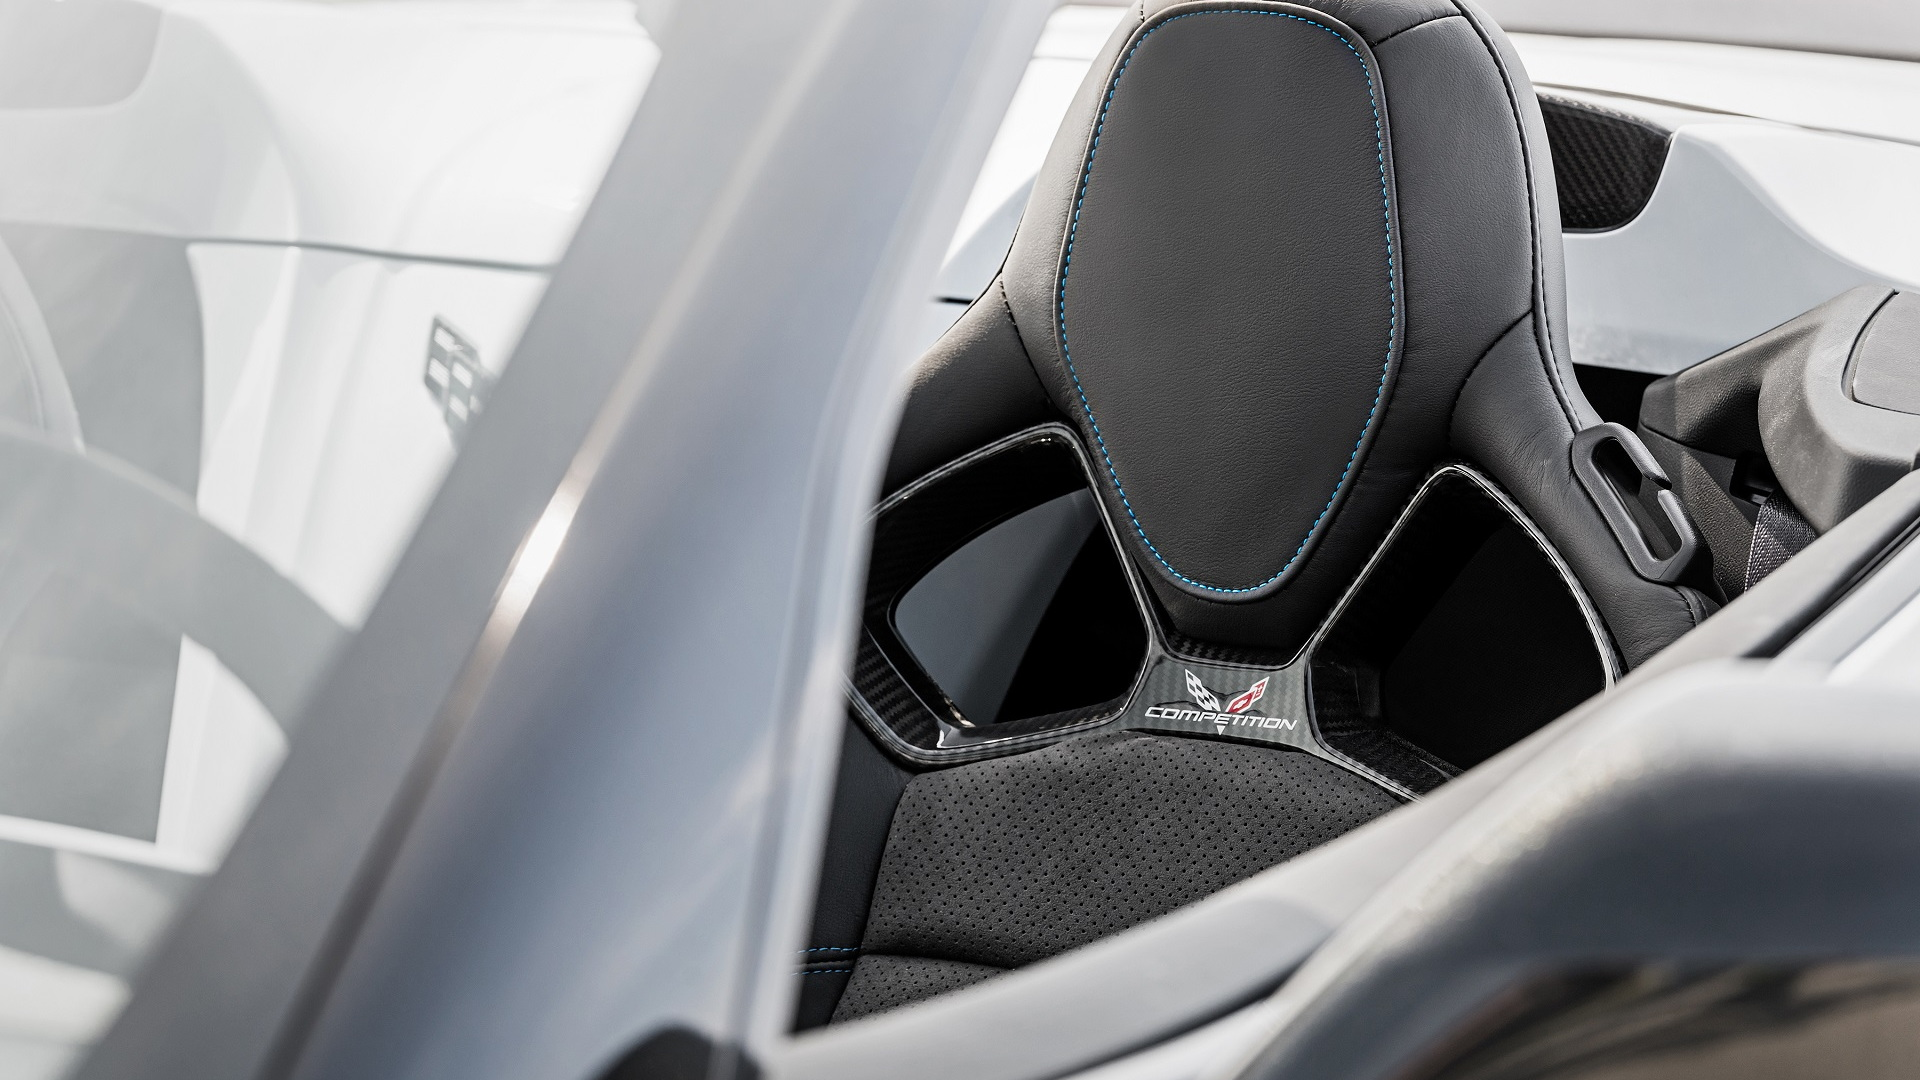 2018 Chevrolet Corvette Grand Sport Carbon 65 Edition